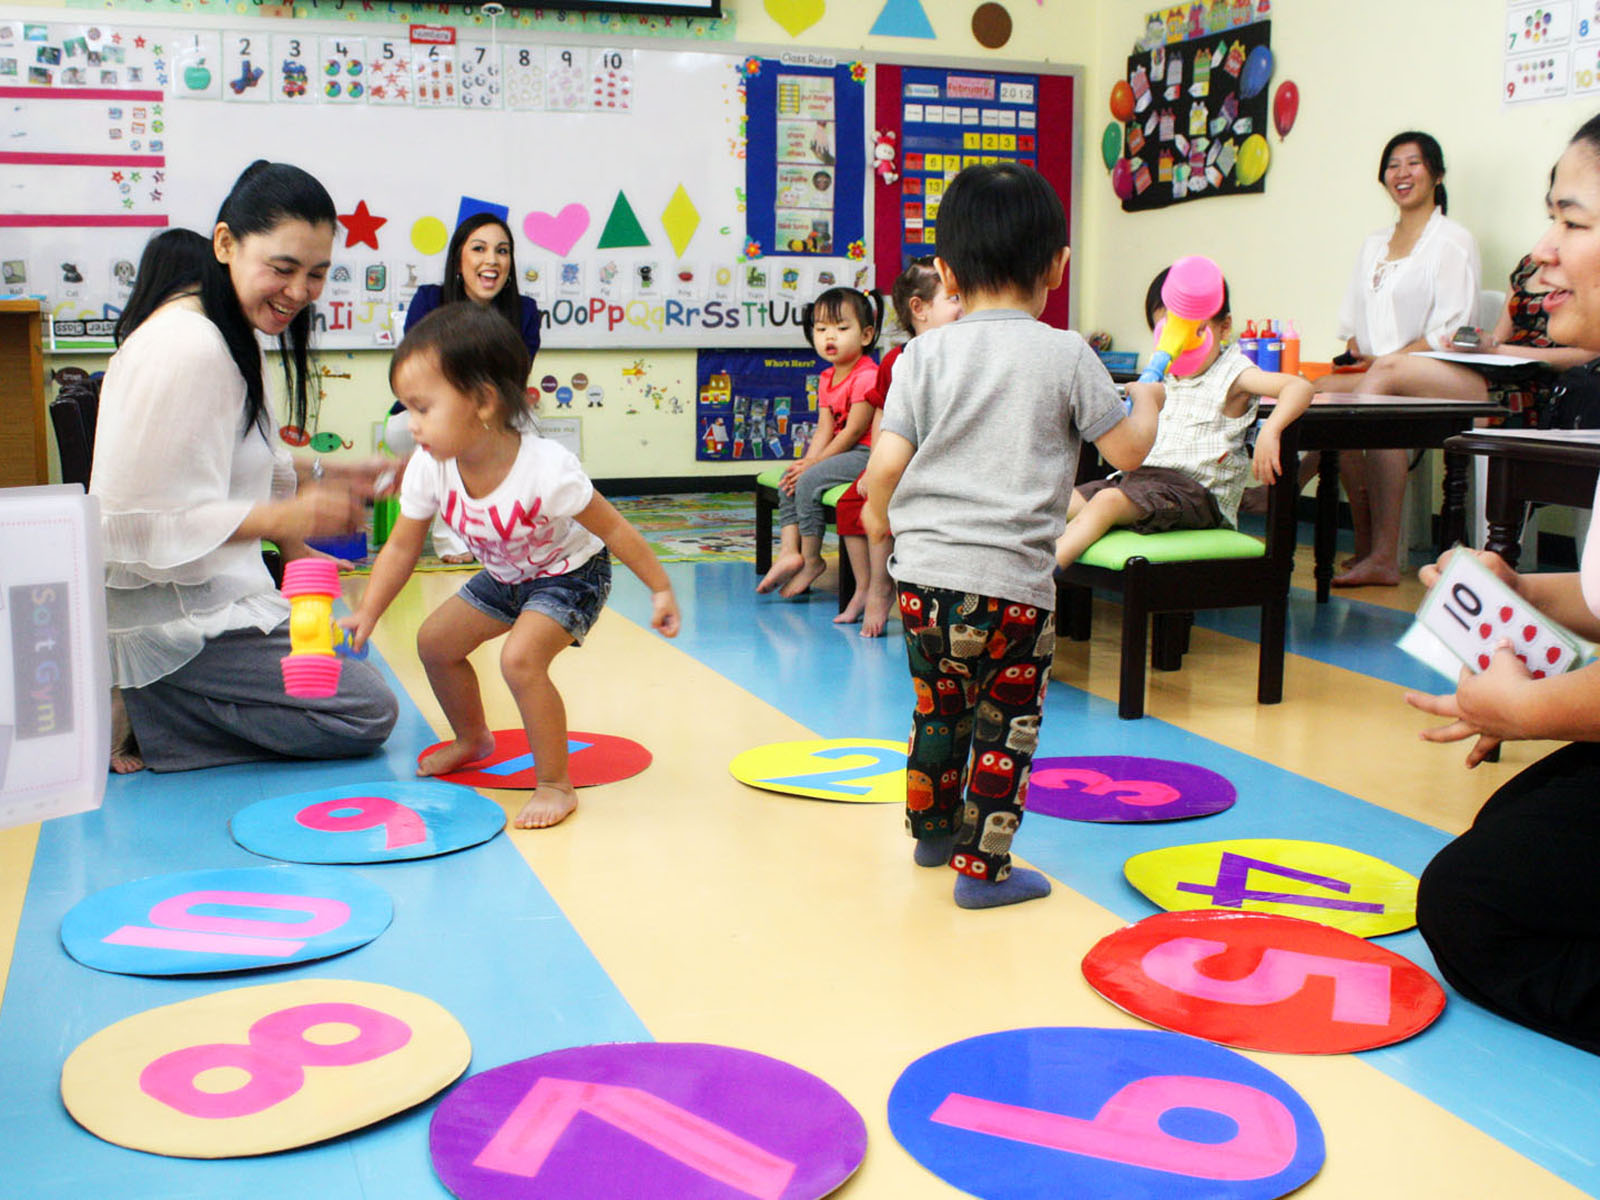 learning through play school development Play is a legitimate right of childhood, representing a crucial aspect of children's physical, intellectual and social development this topic will help you understand the benefits of play and why it should be an integral part of young children's education.